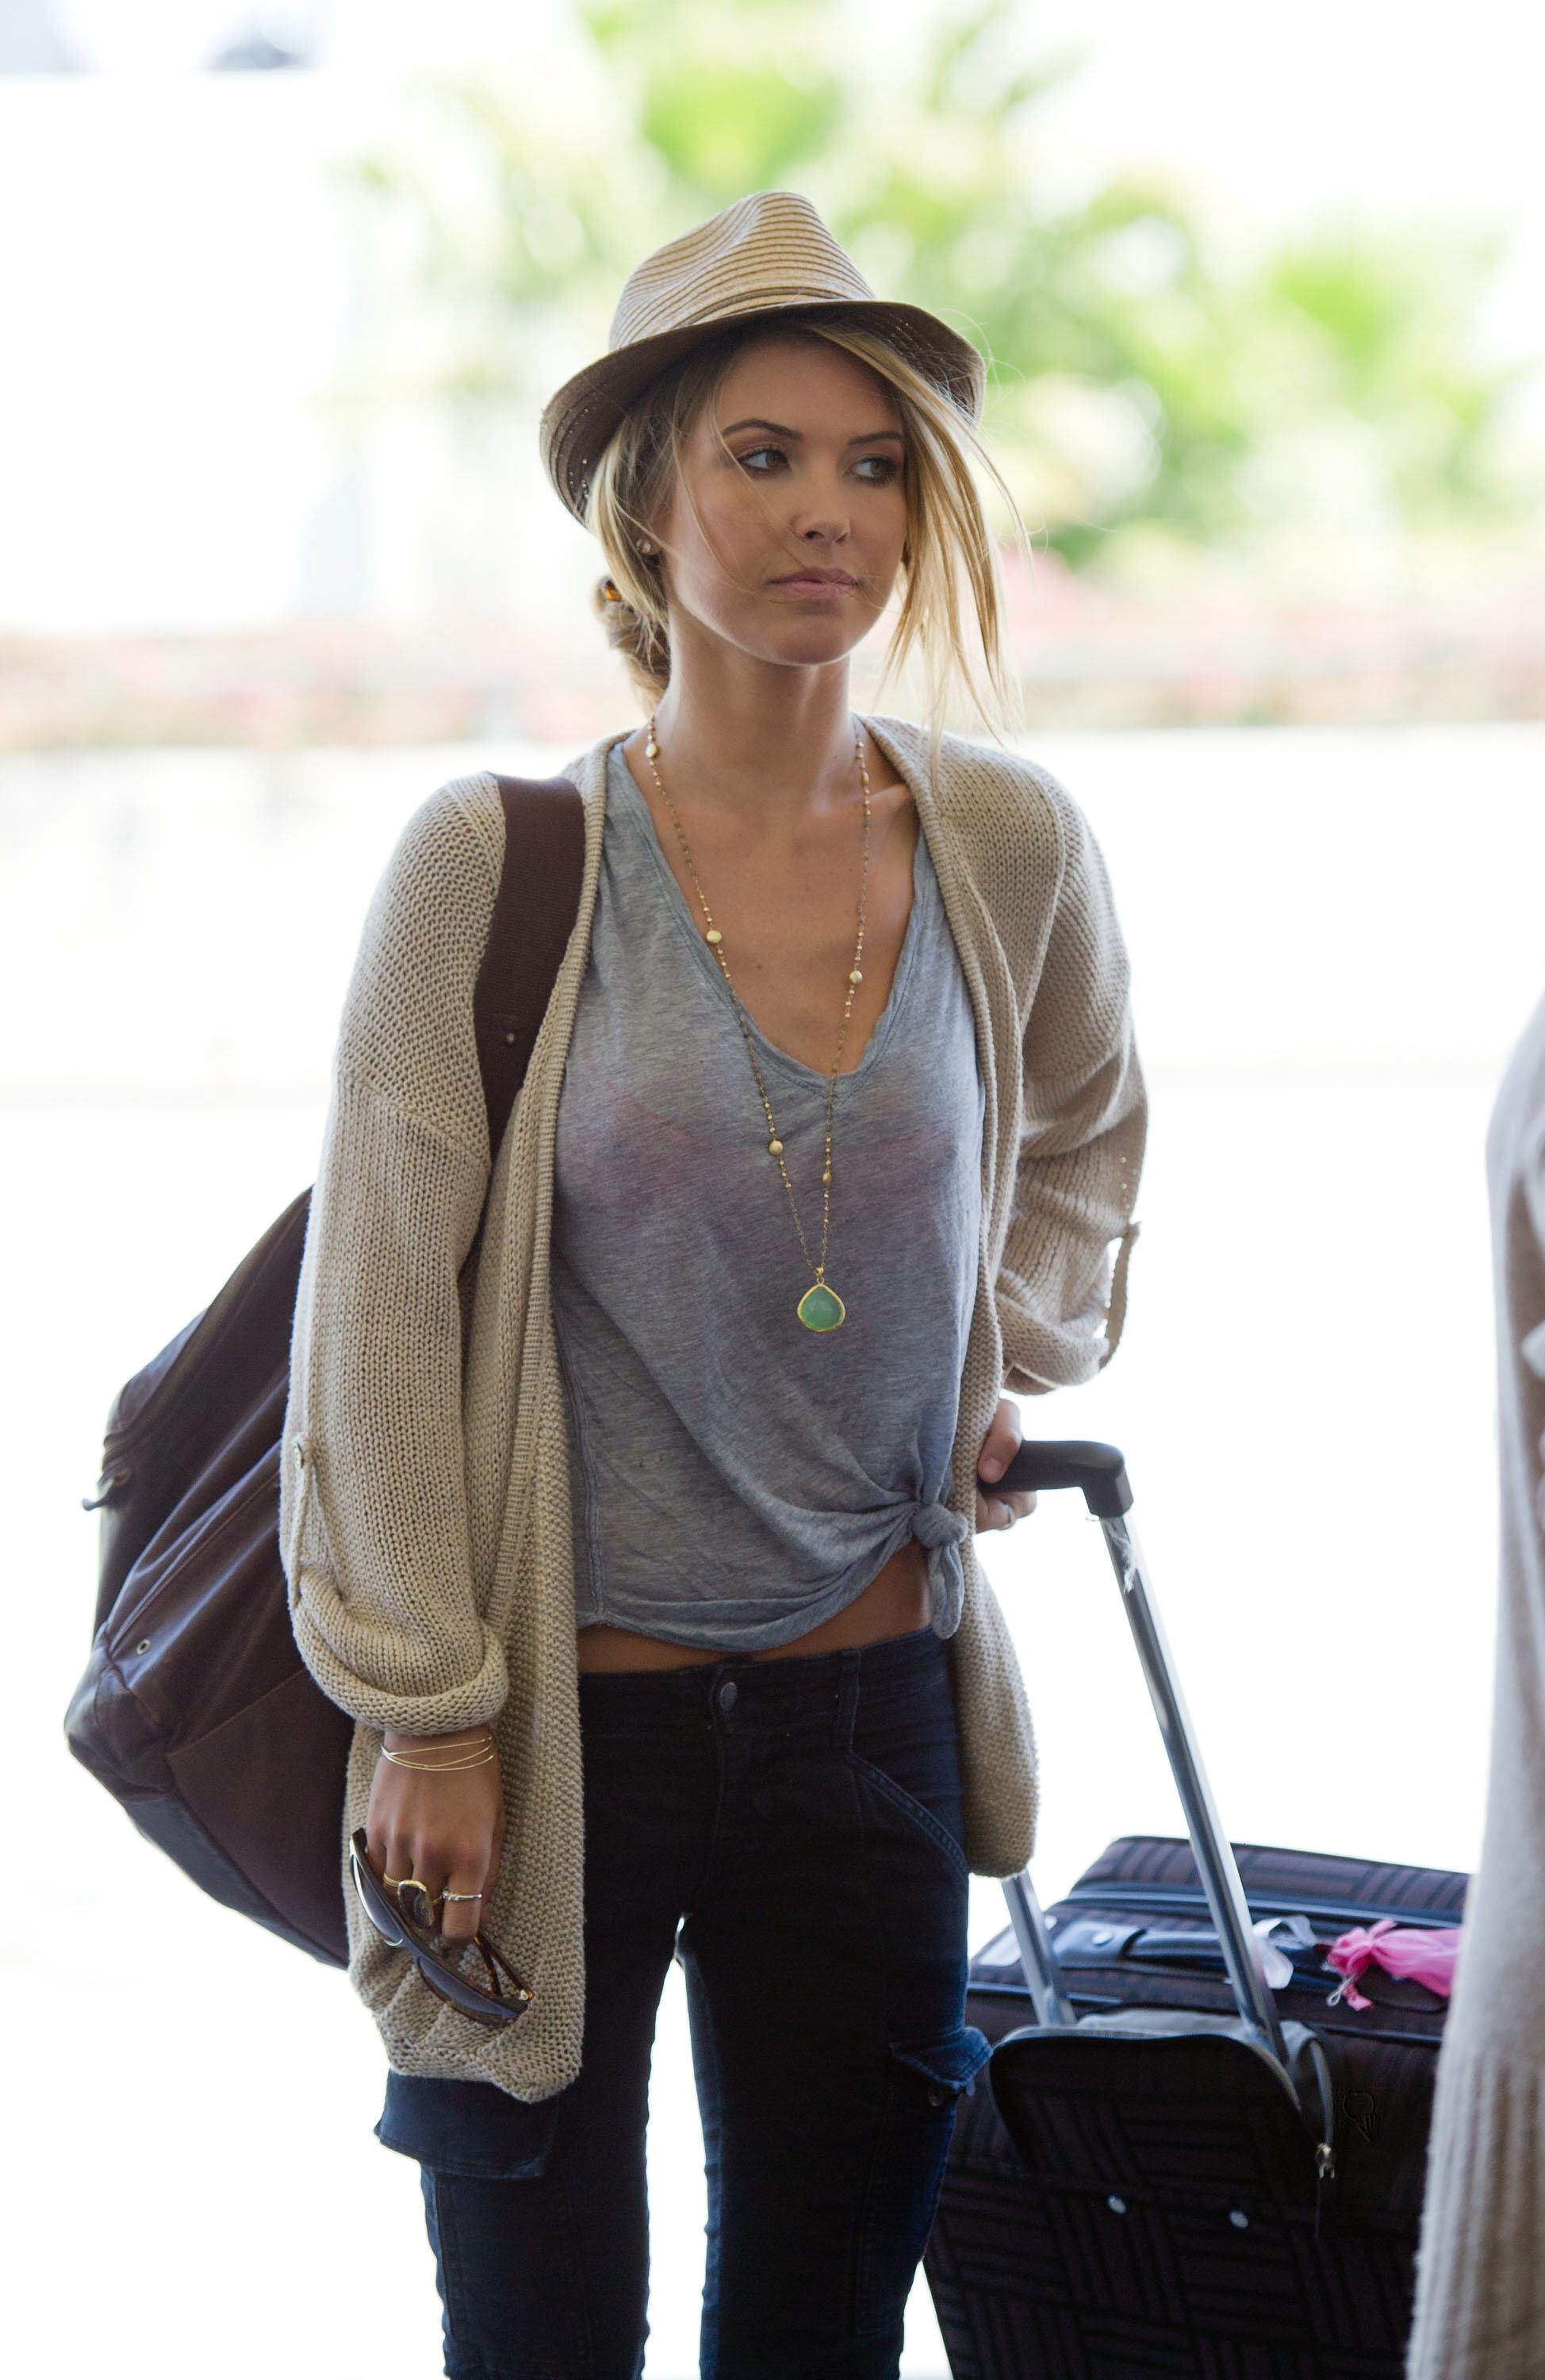 audrina patridge in seethrough departing from the lax airport